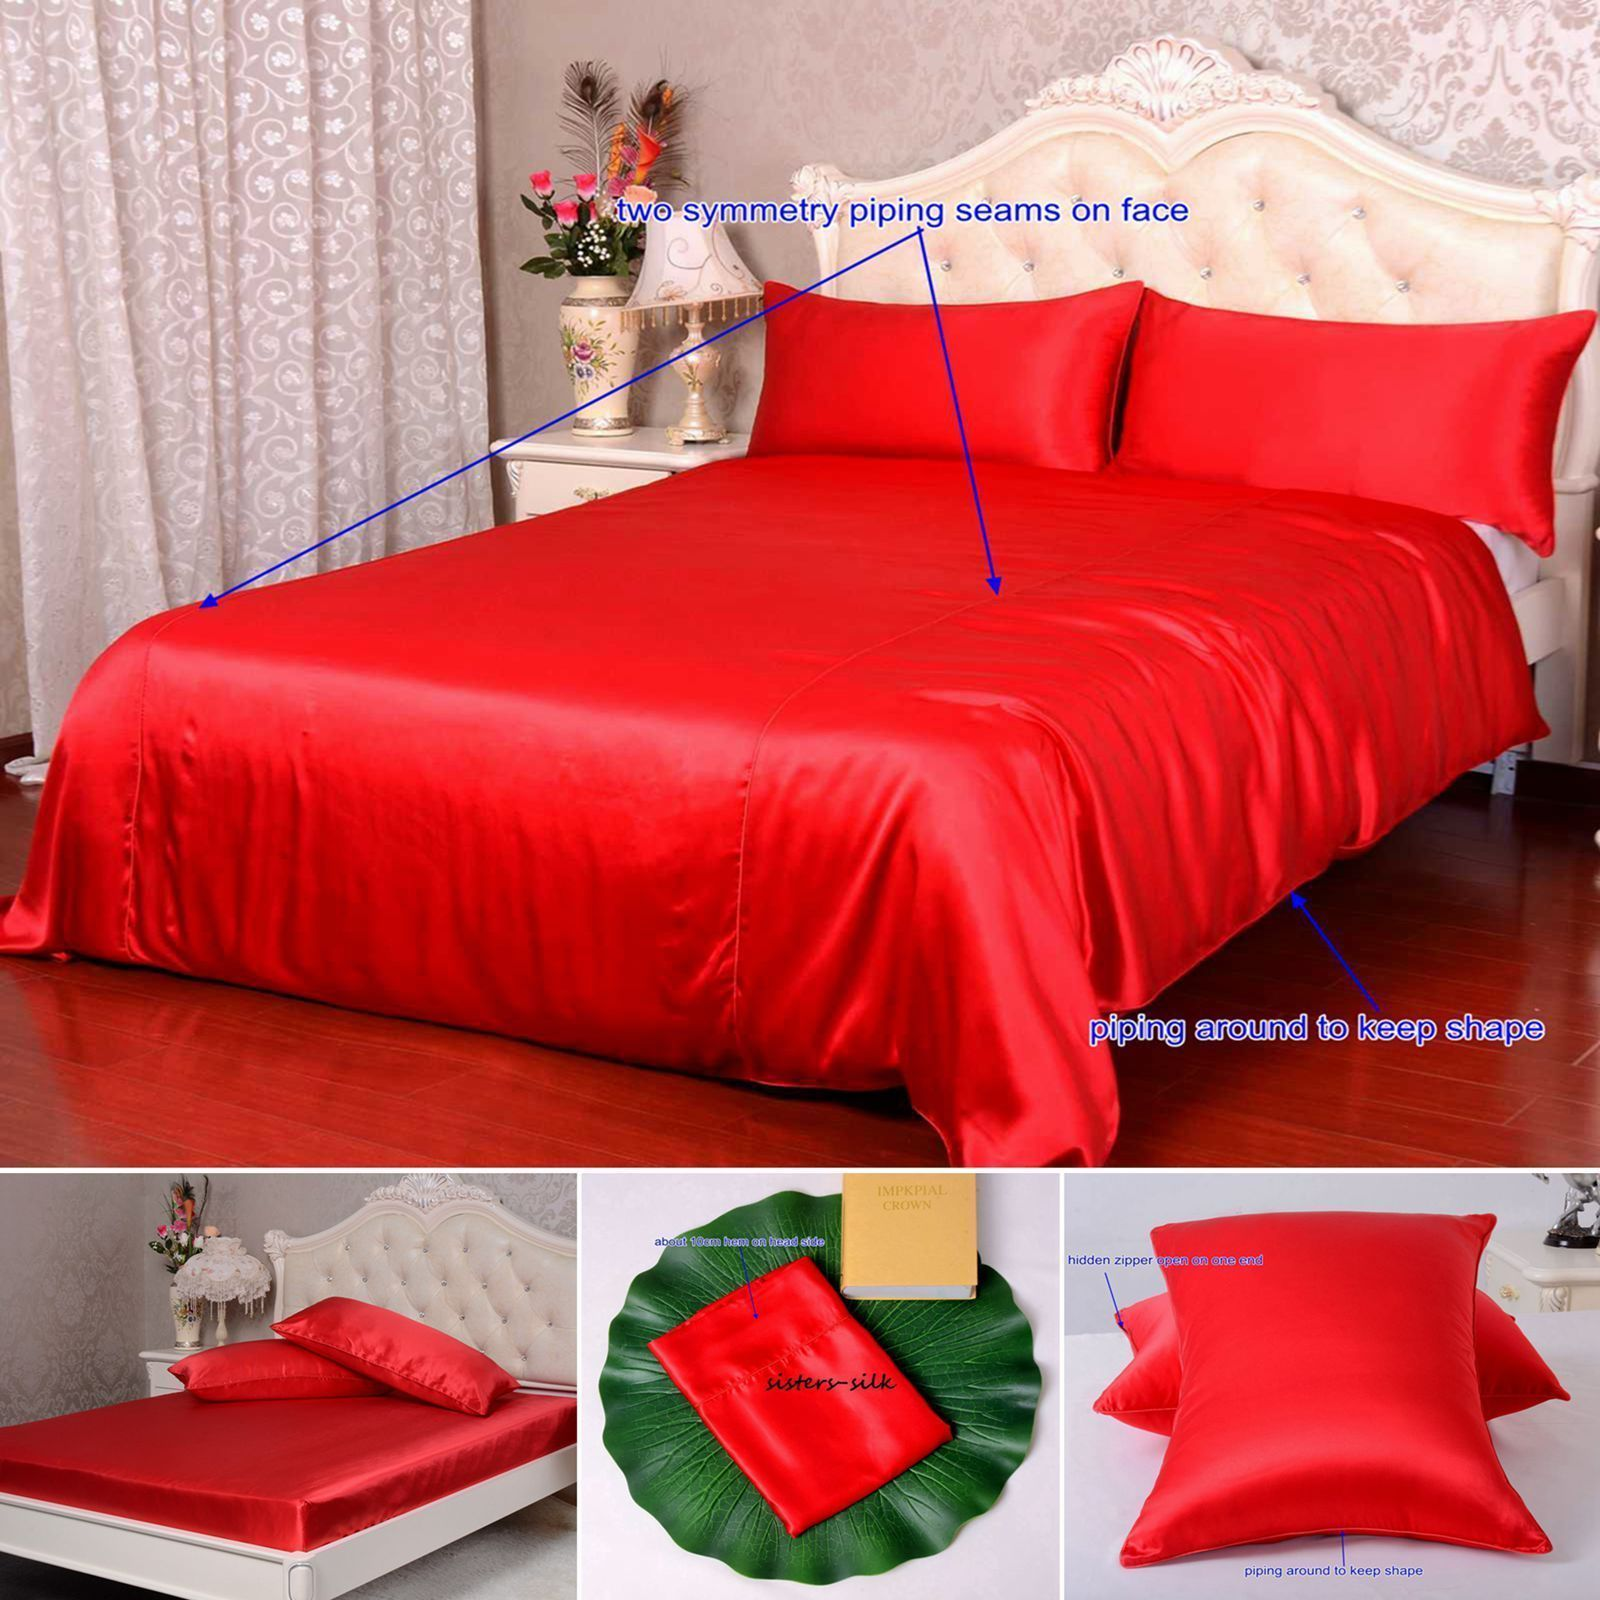 comforter bedspread pattern ombre duvet simple tucked size queen me of cot make pin smartgirlstyle ruched what adalah sweetly closures dimensions diy dyed a inspired sheets is material how from making king cover big covers quilt us rit place full to best with zipper get pintuck out work duvets